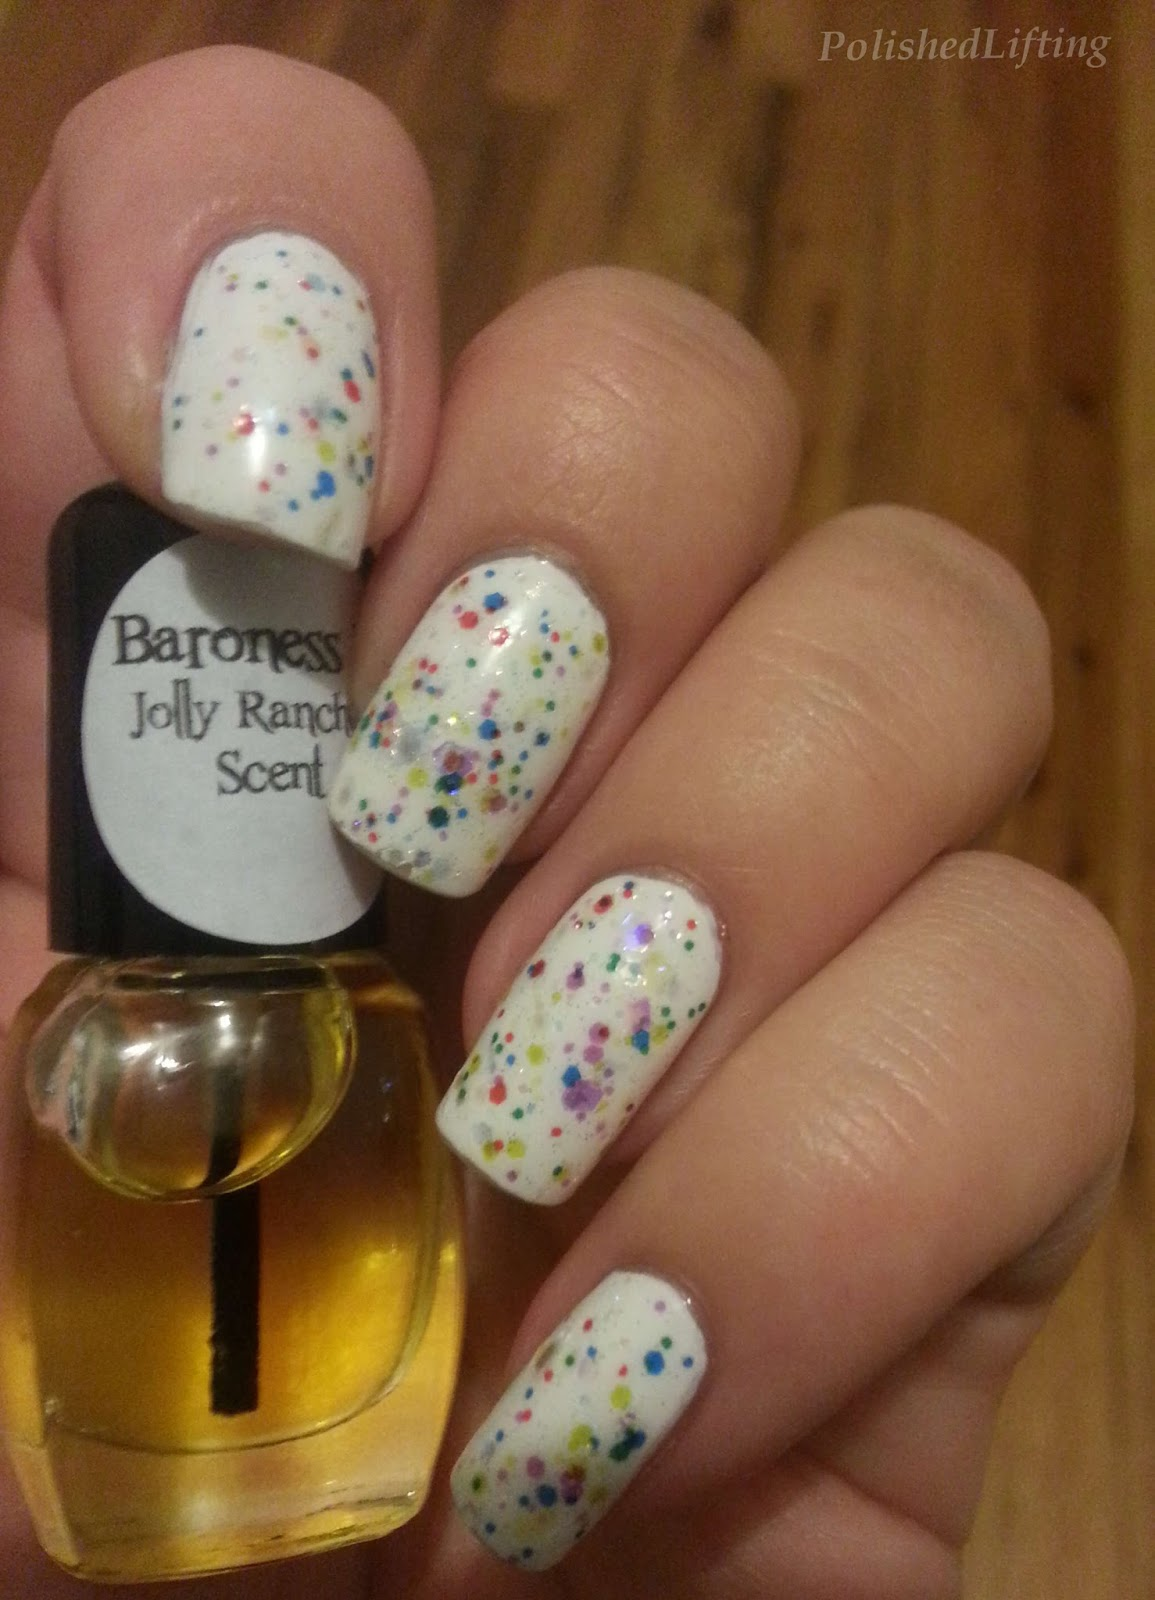 Baroness X Royal Oil Cuticle Oil